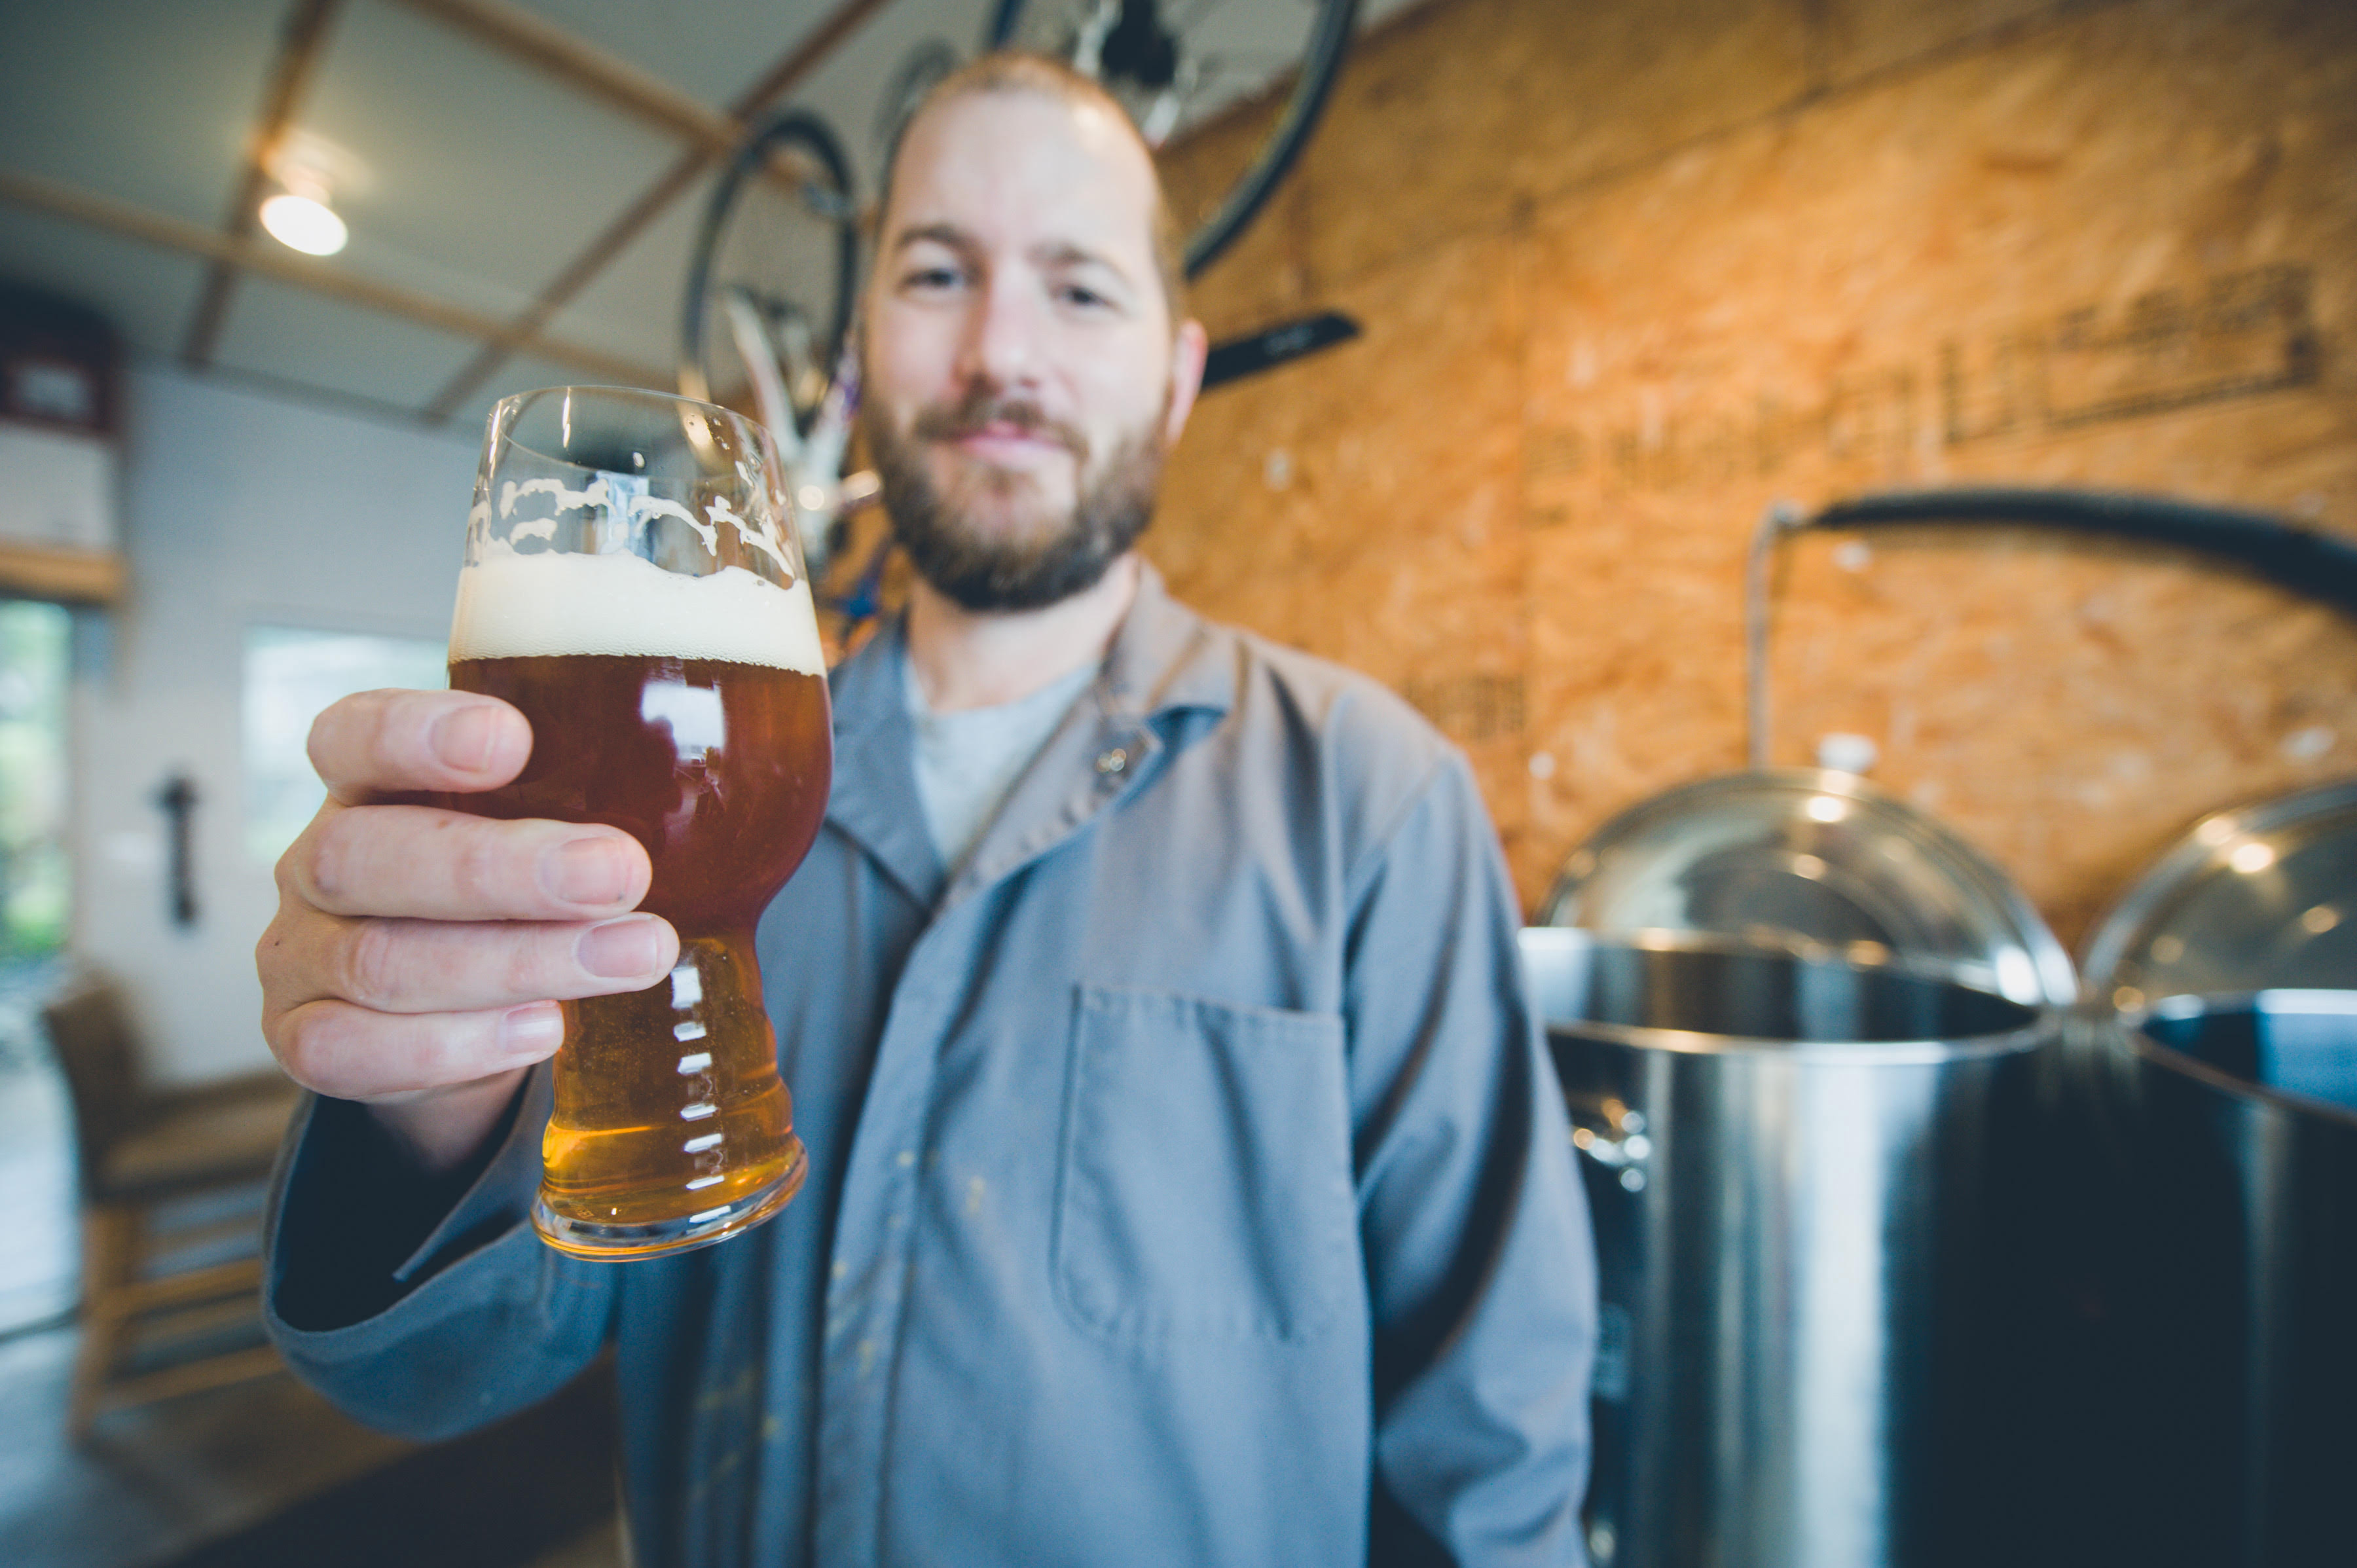 Vancouver Island 'Craft Beer & Wilderness' Retreat A Uniquely Canadian First